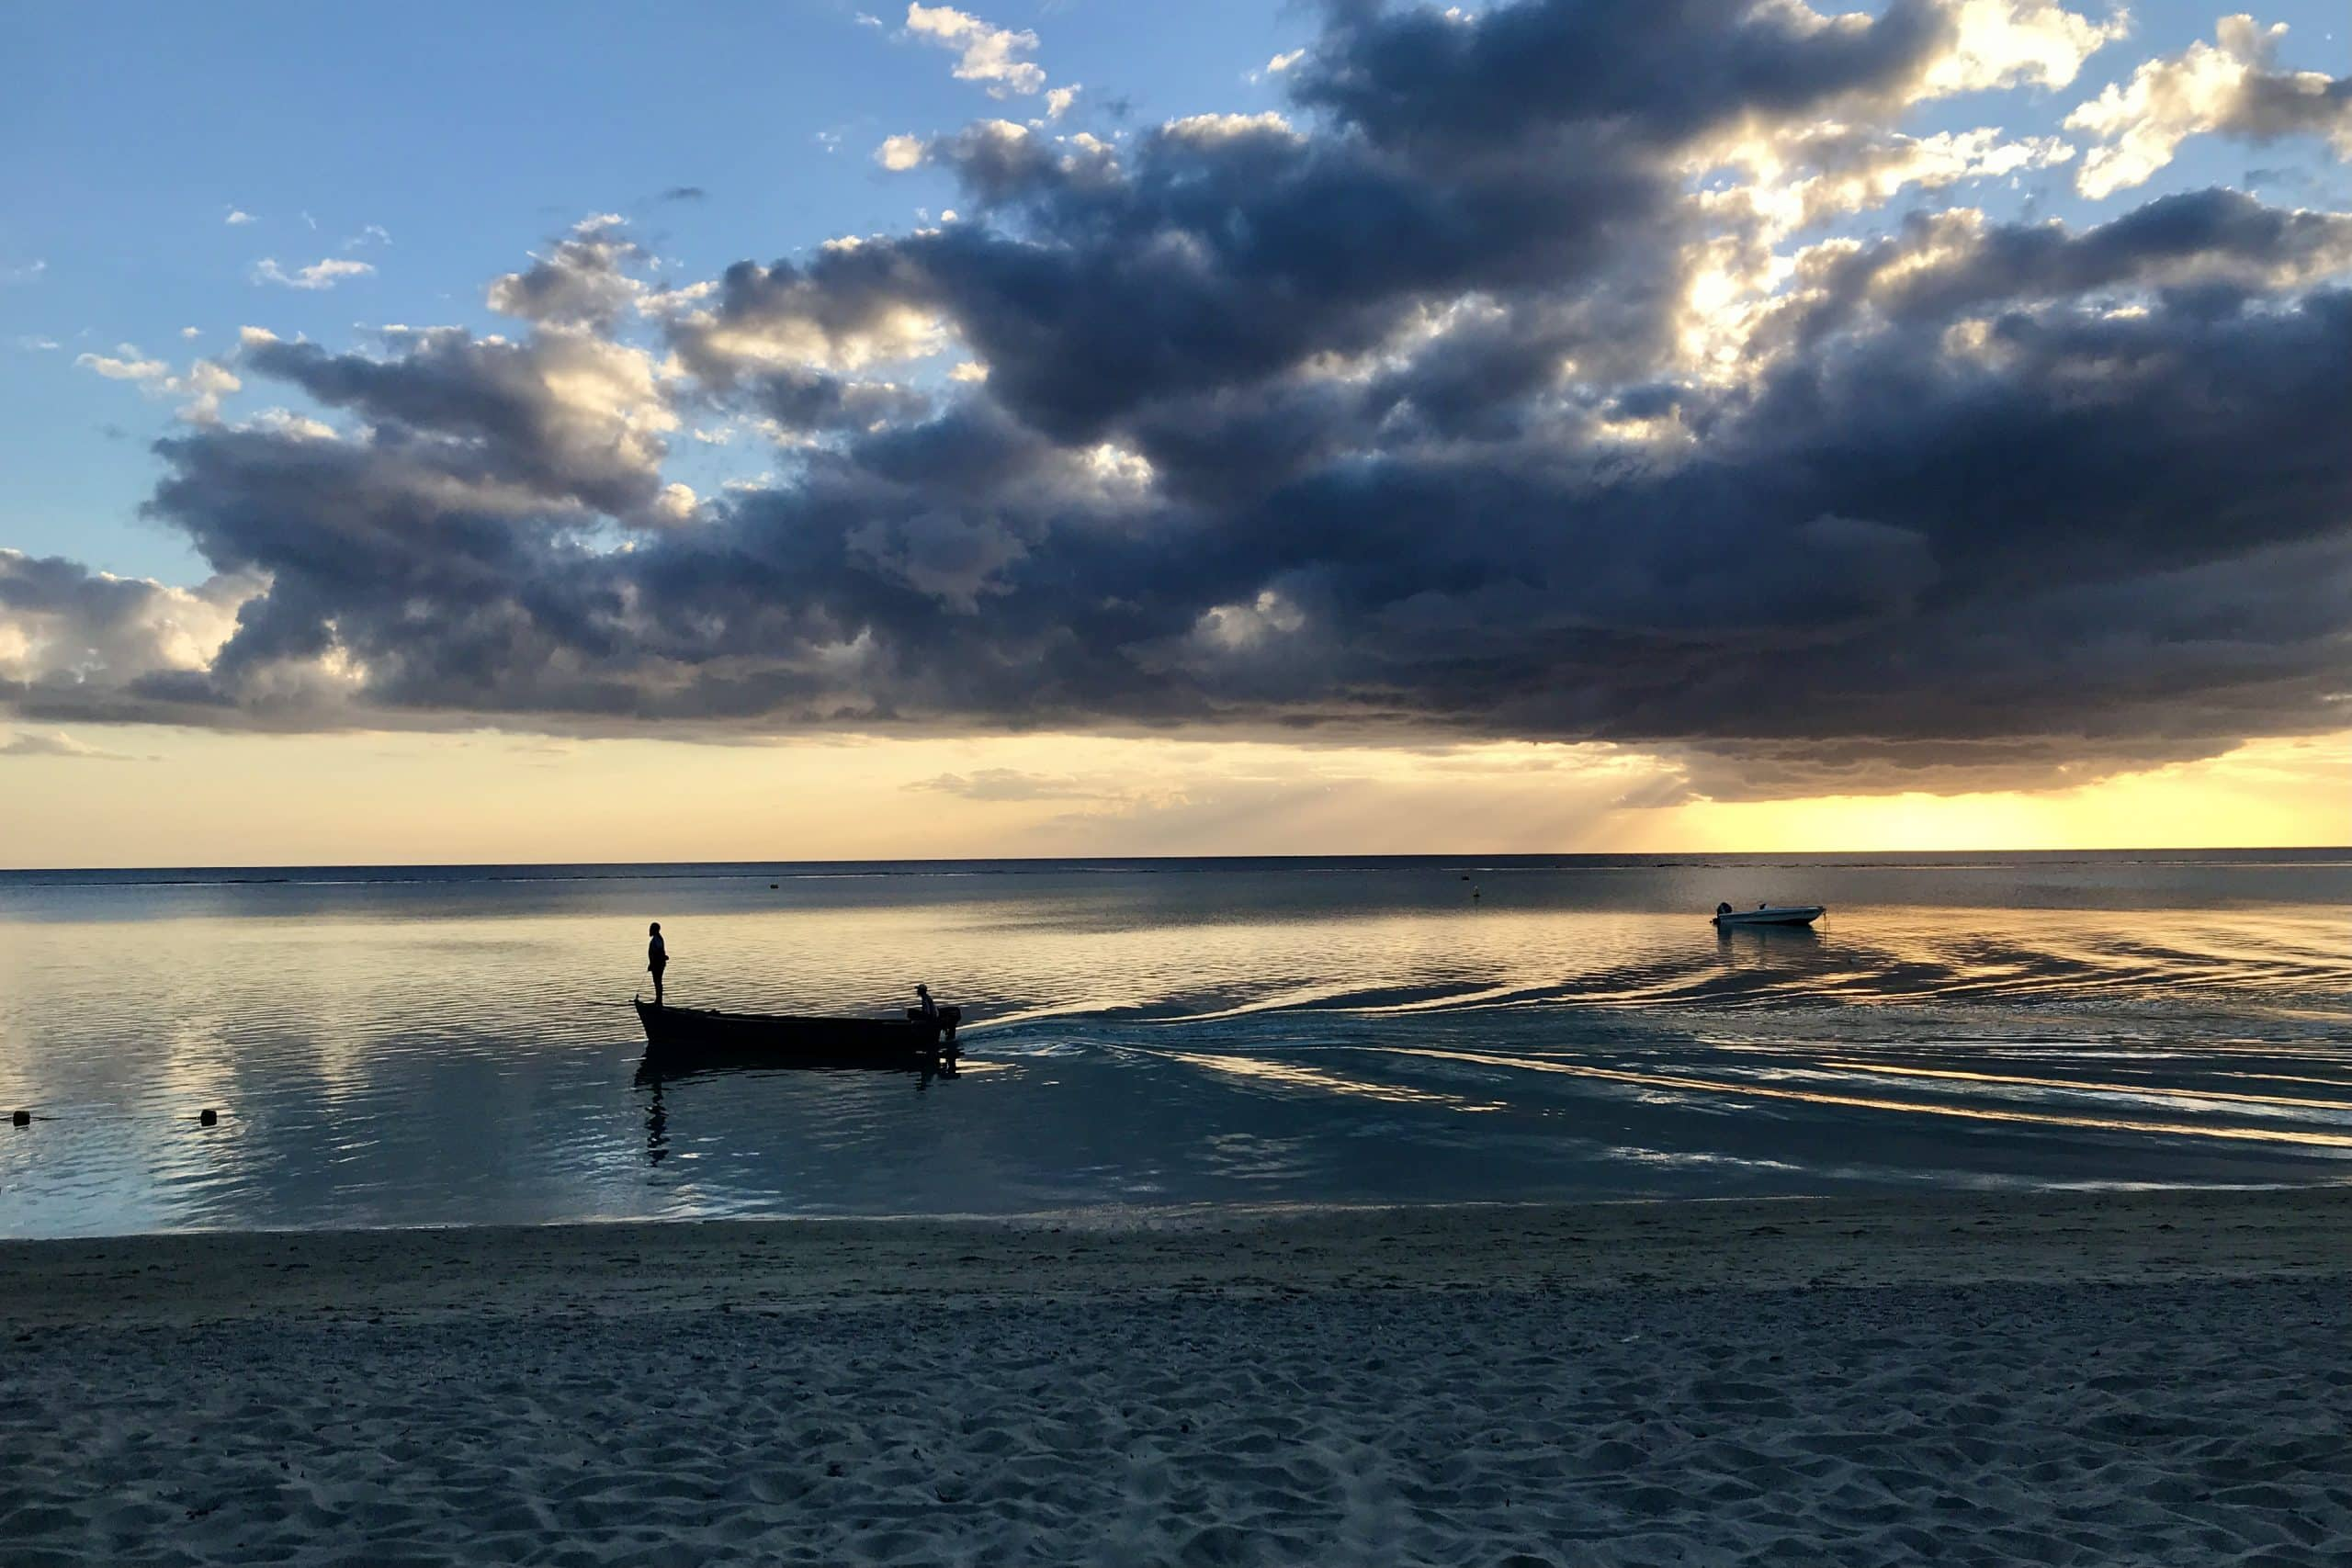 Fishing boat comes home across smooth water reflecting the sunset in Mauritius